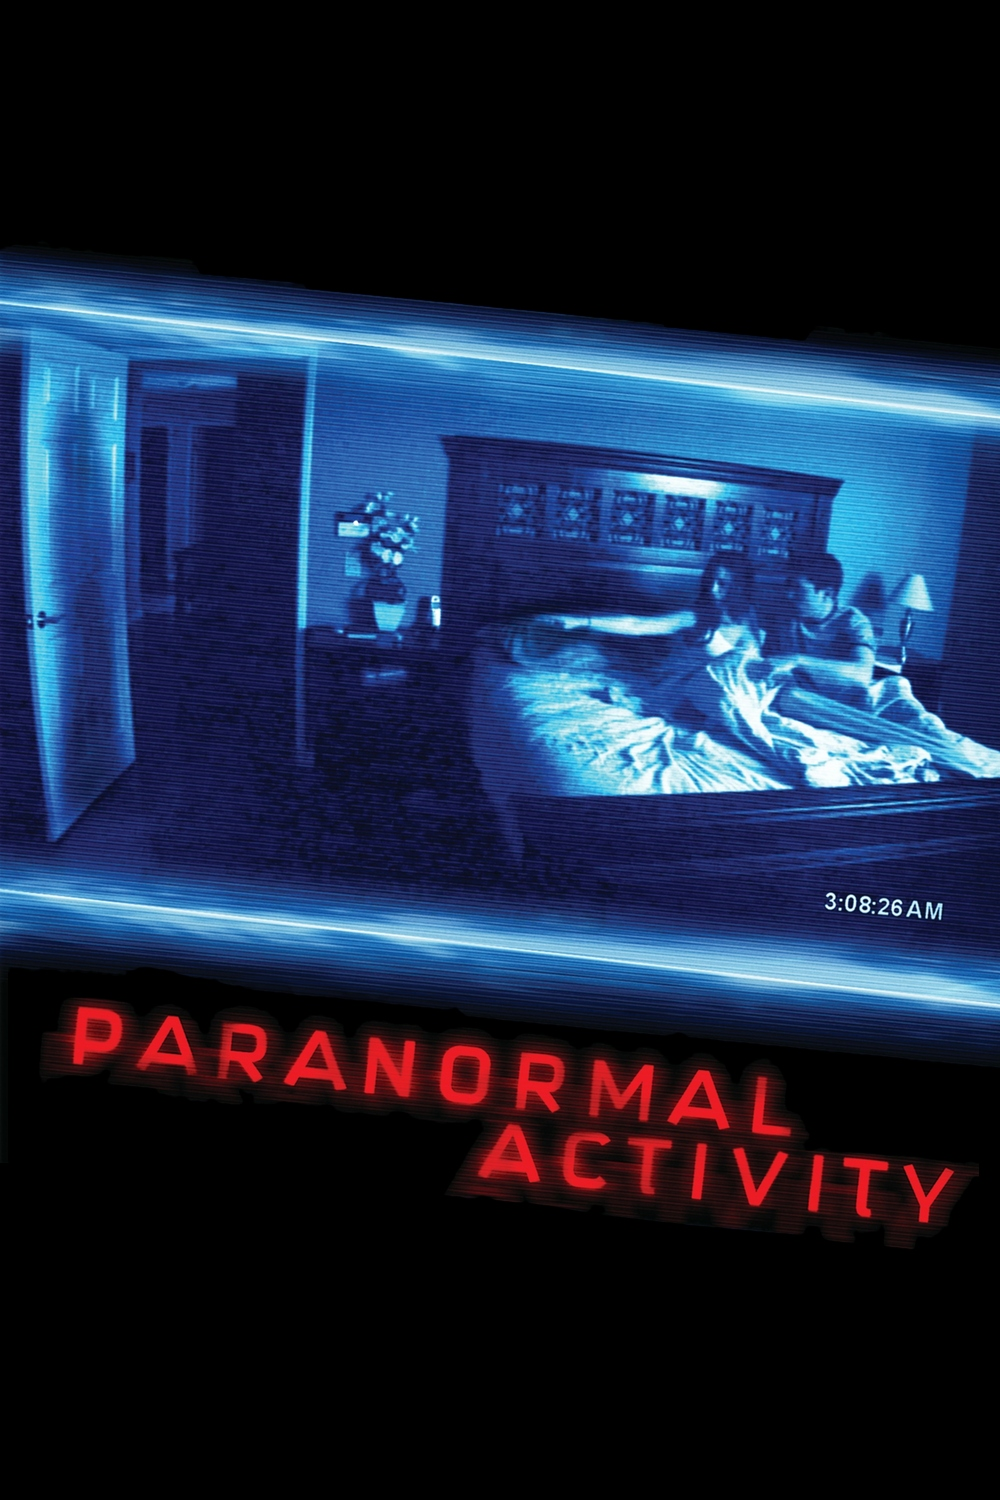 killapalooza 21 paranormal activity double feature